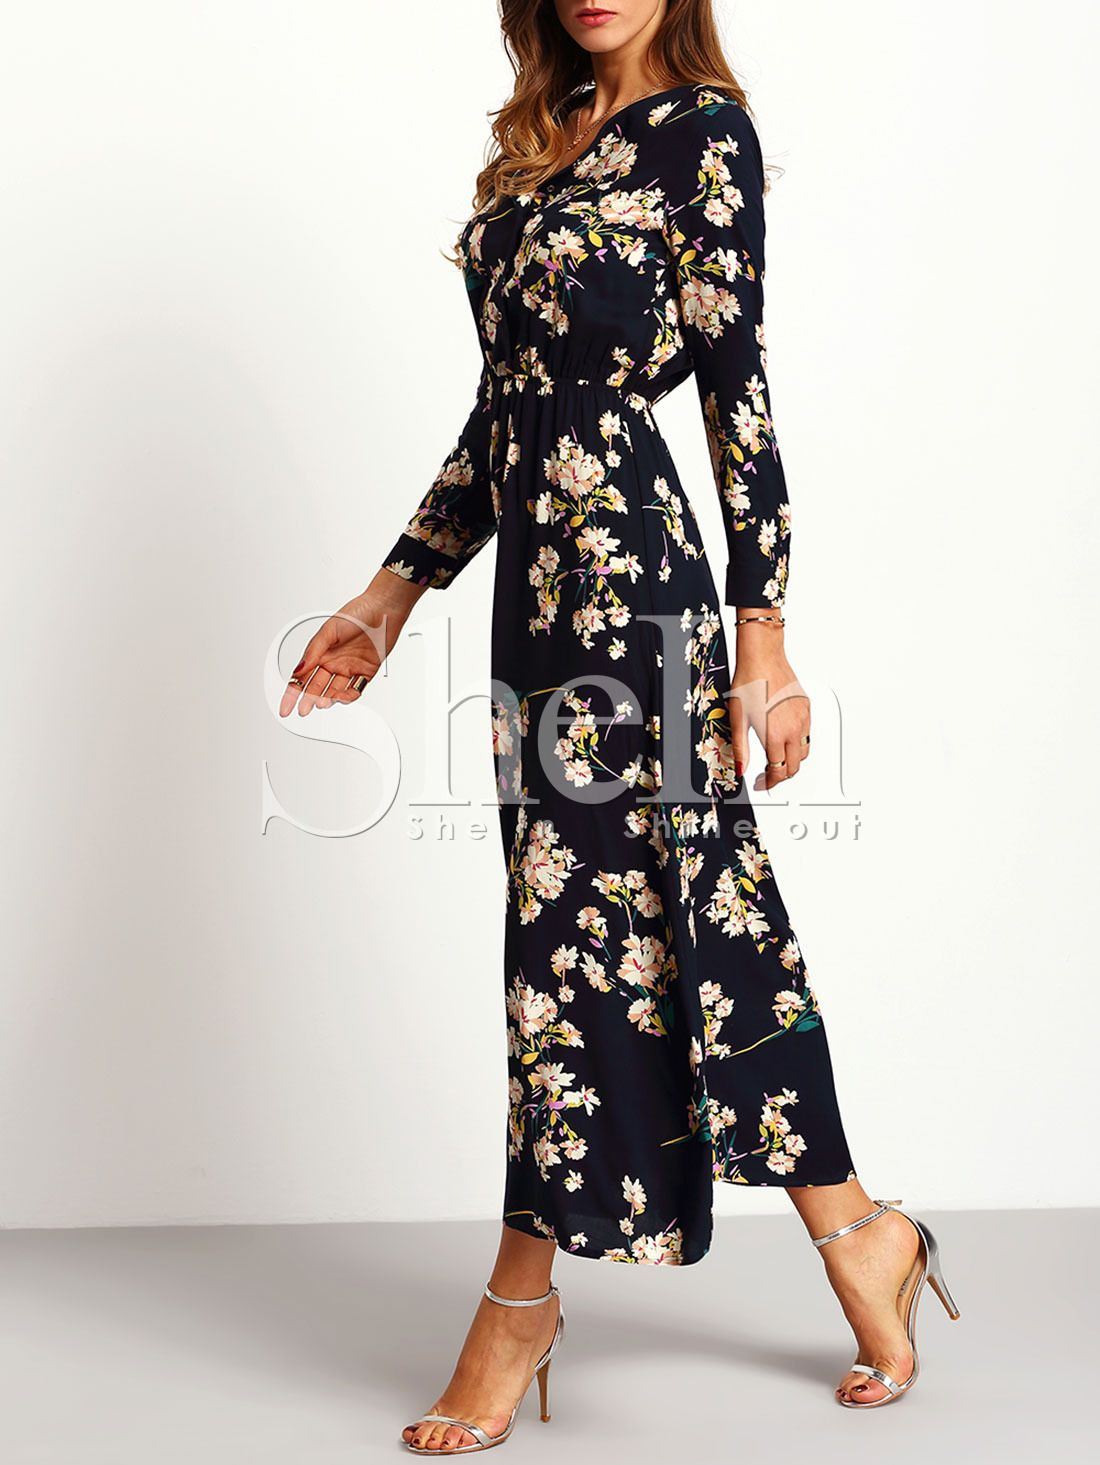 58f9f2a289 Shop Navy Long Sleeve Floral Maxi Dress online. SheIn offers Navy Long  Sleeve Floral Maxi Dress & more to fit your fashionable needs.